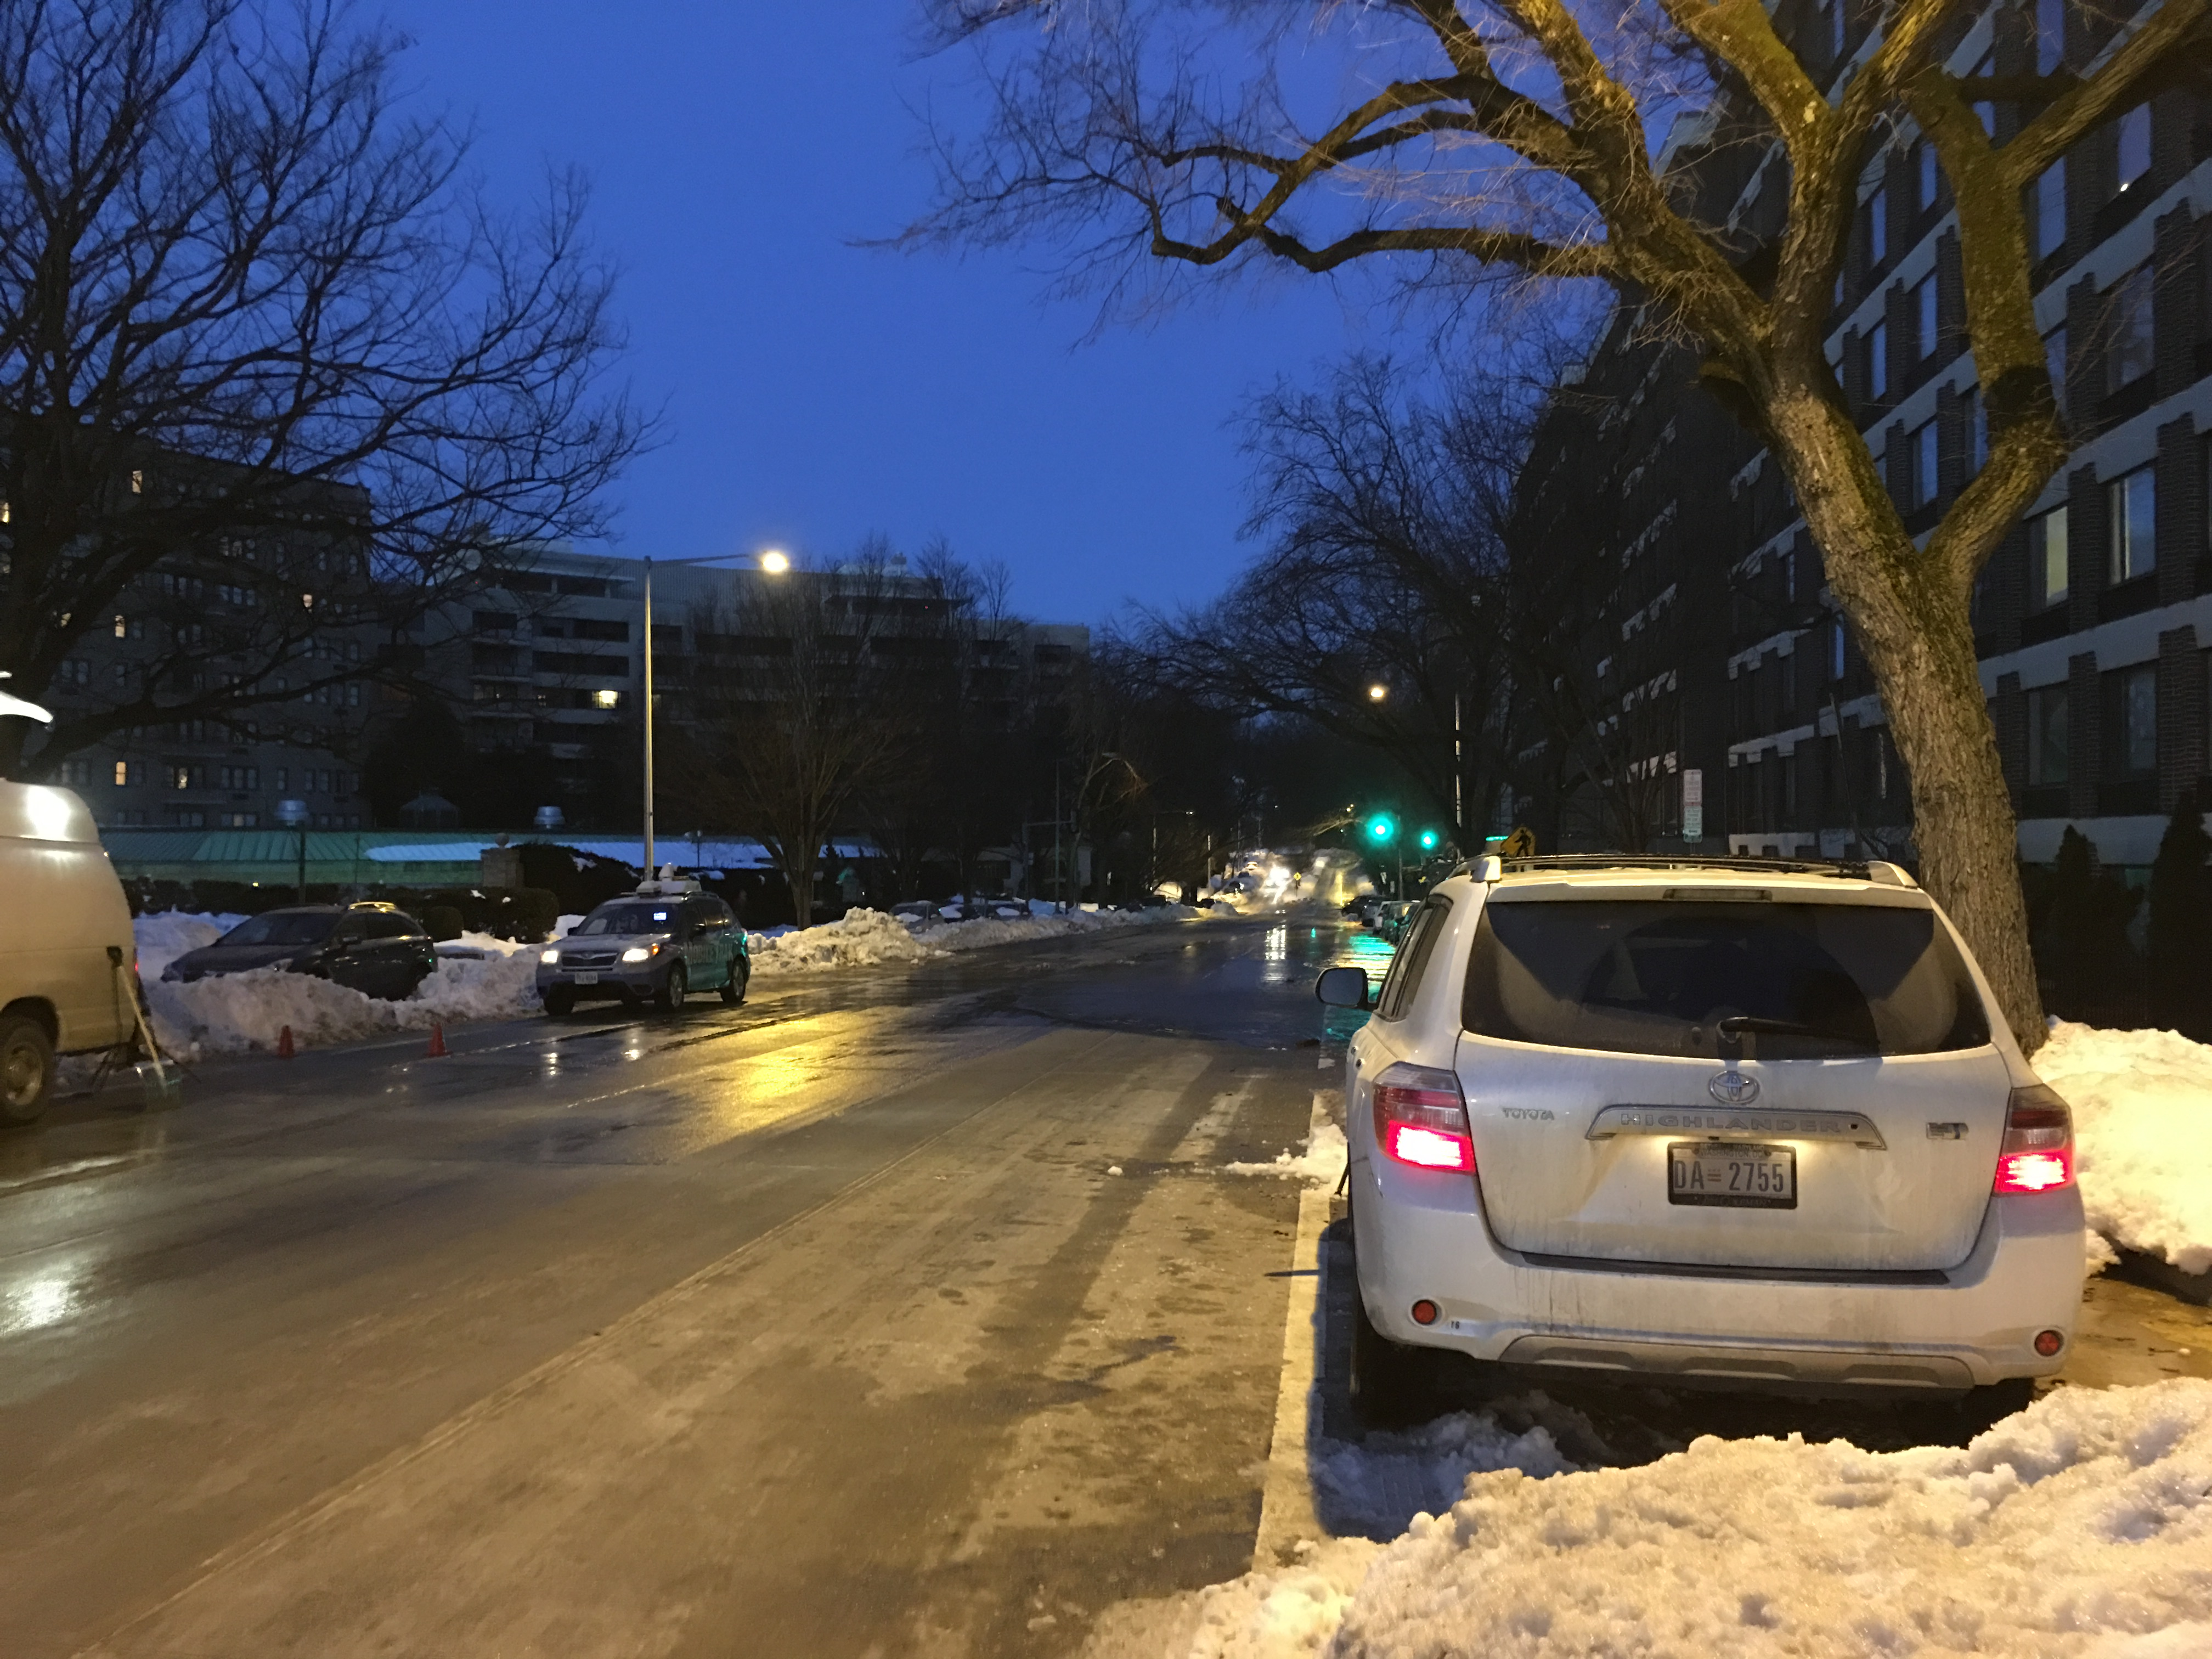 Water main break on Calvert Street